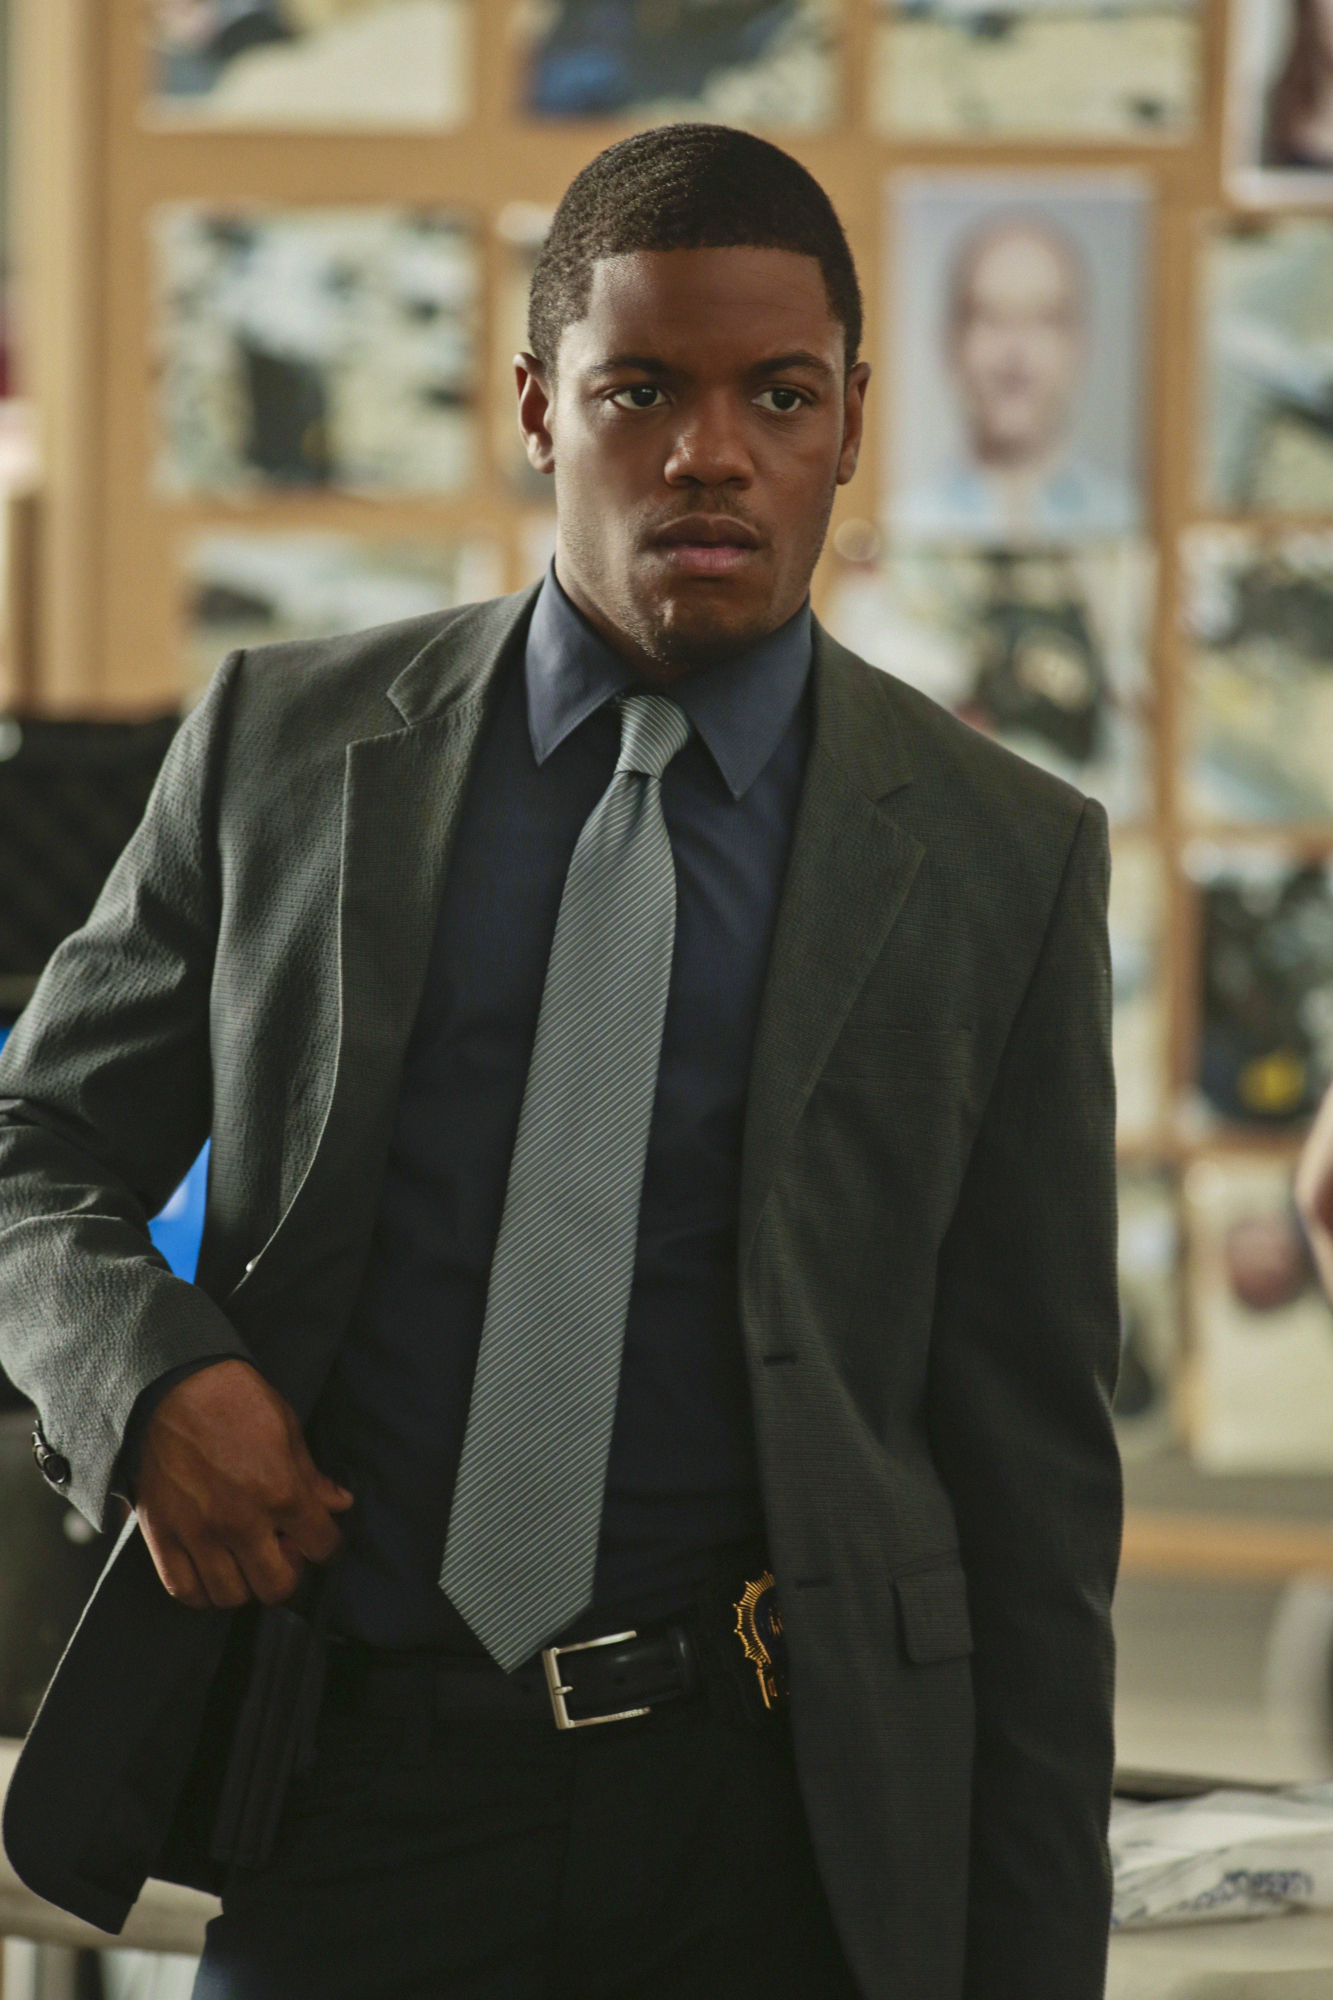 Detective Bell